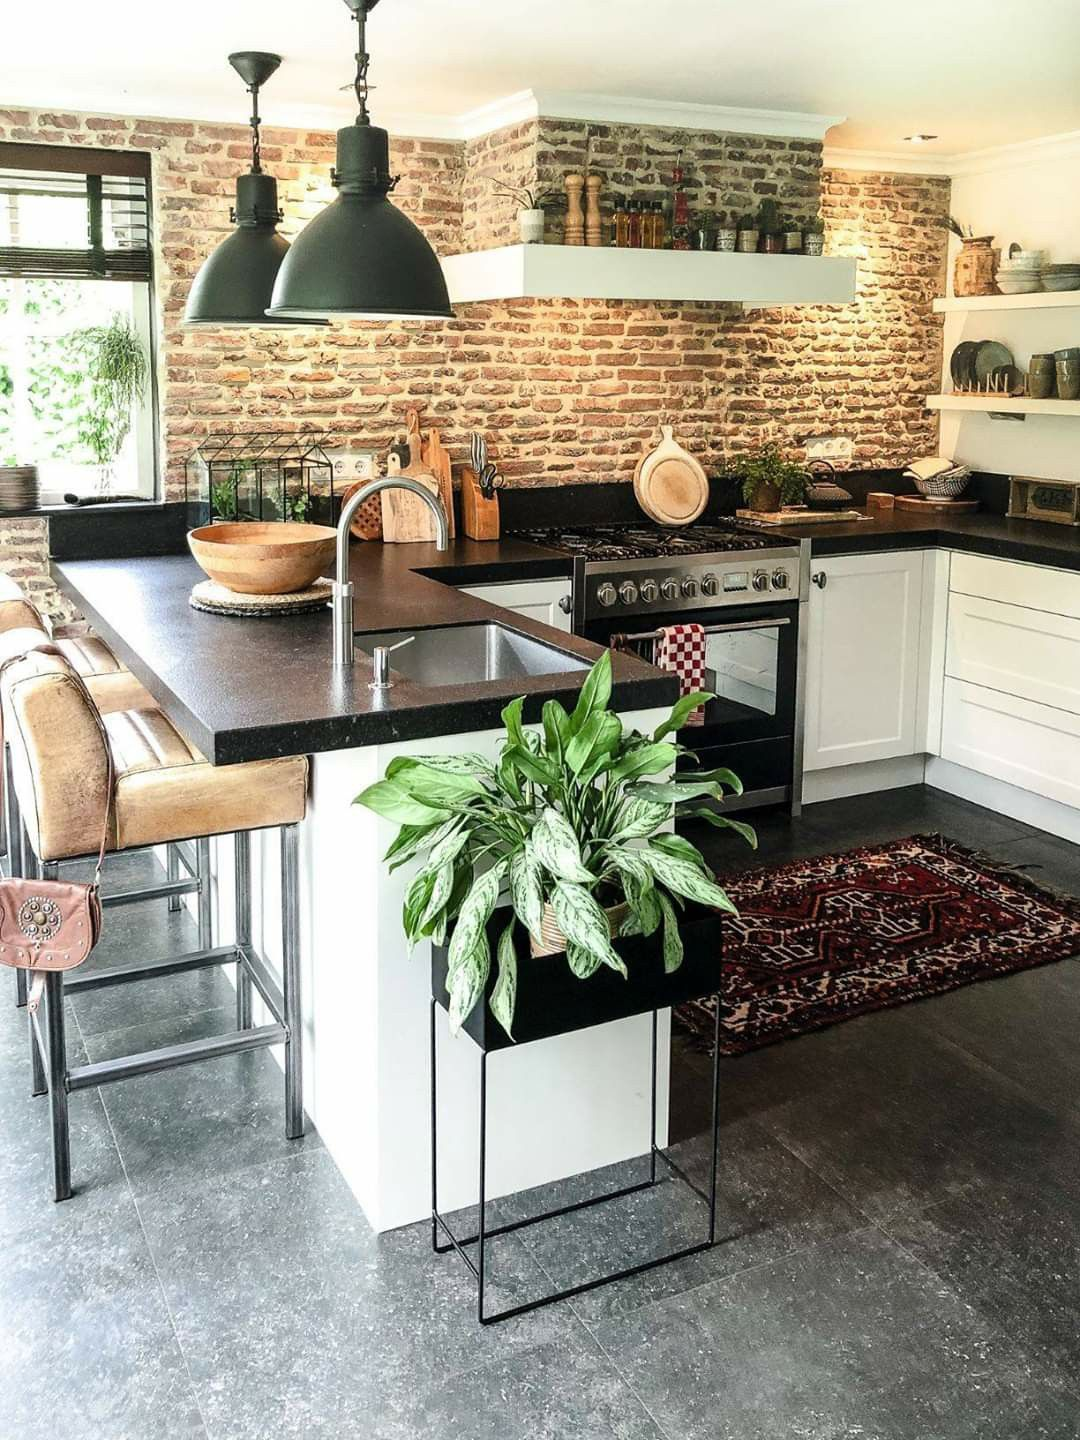 Pin by Léna Bonfort on Kitchens in 18  Brick wall kitchen